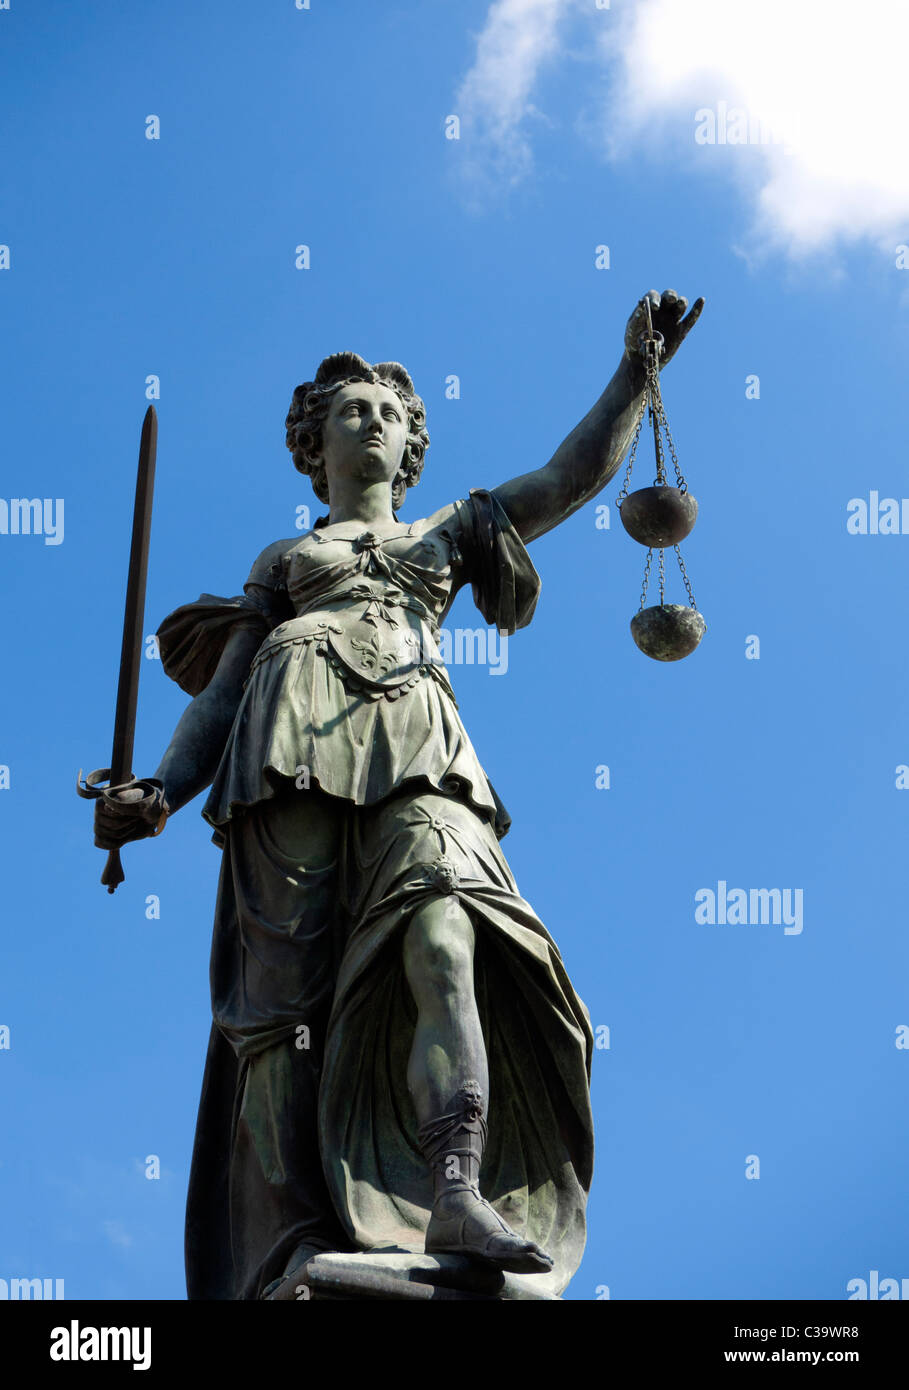 Justitia fountain statue detail at Romer Square in Frankfurt am Main old town Germany - Stock Image